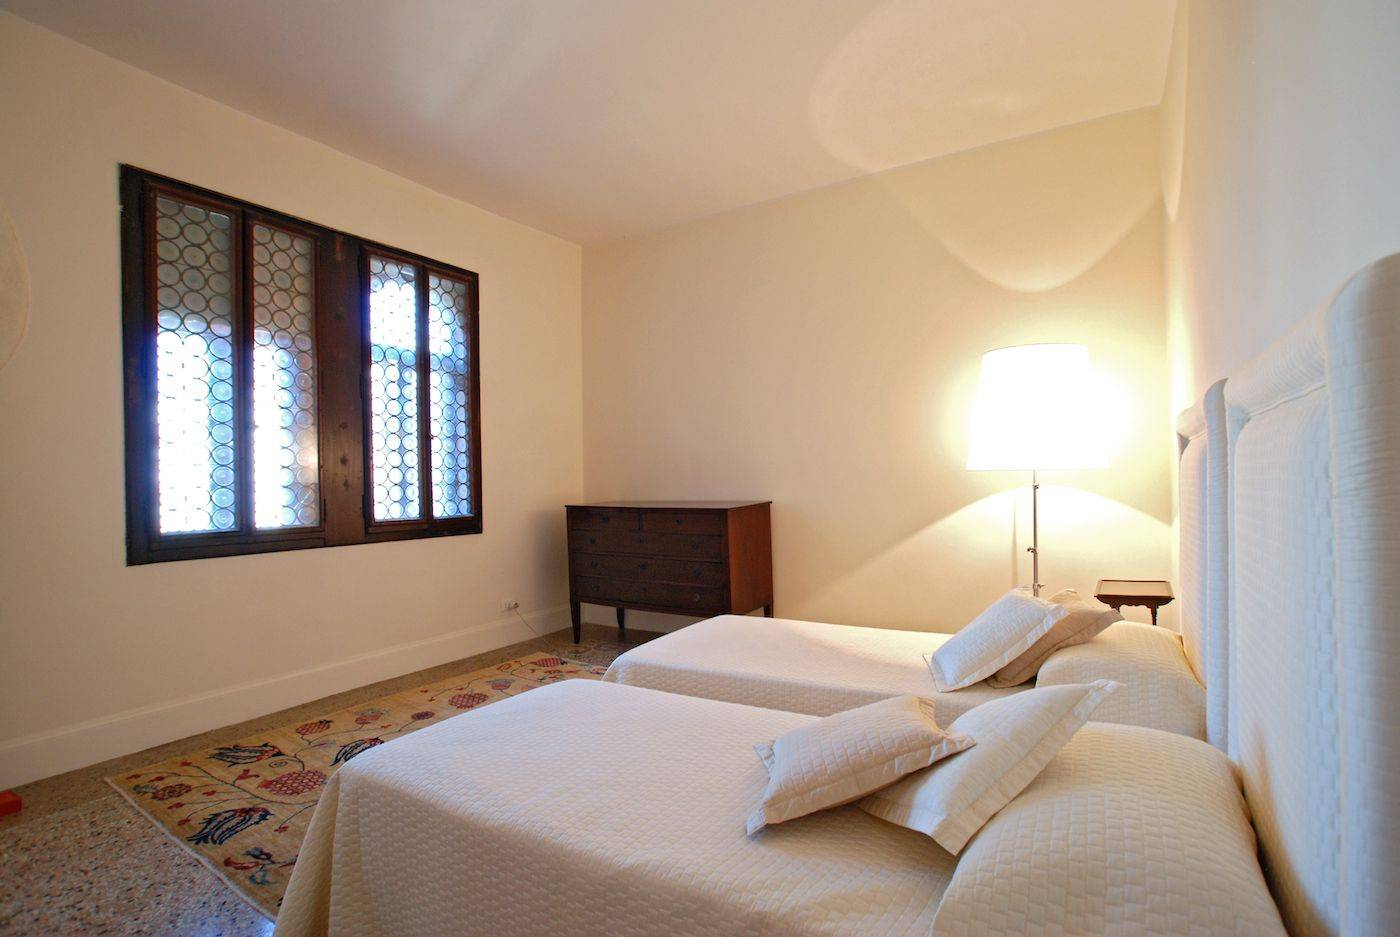 third bedroom with single beds